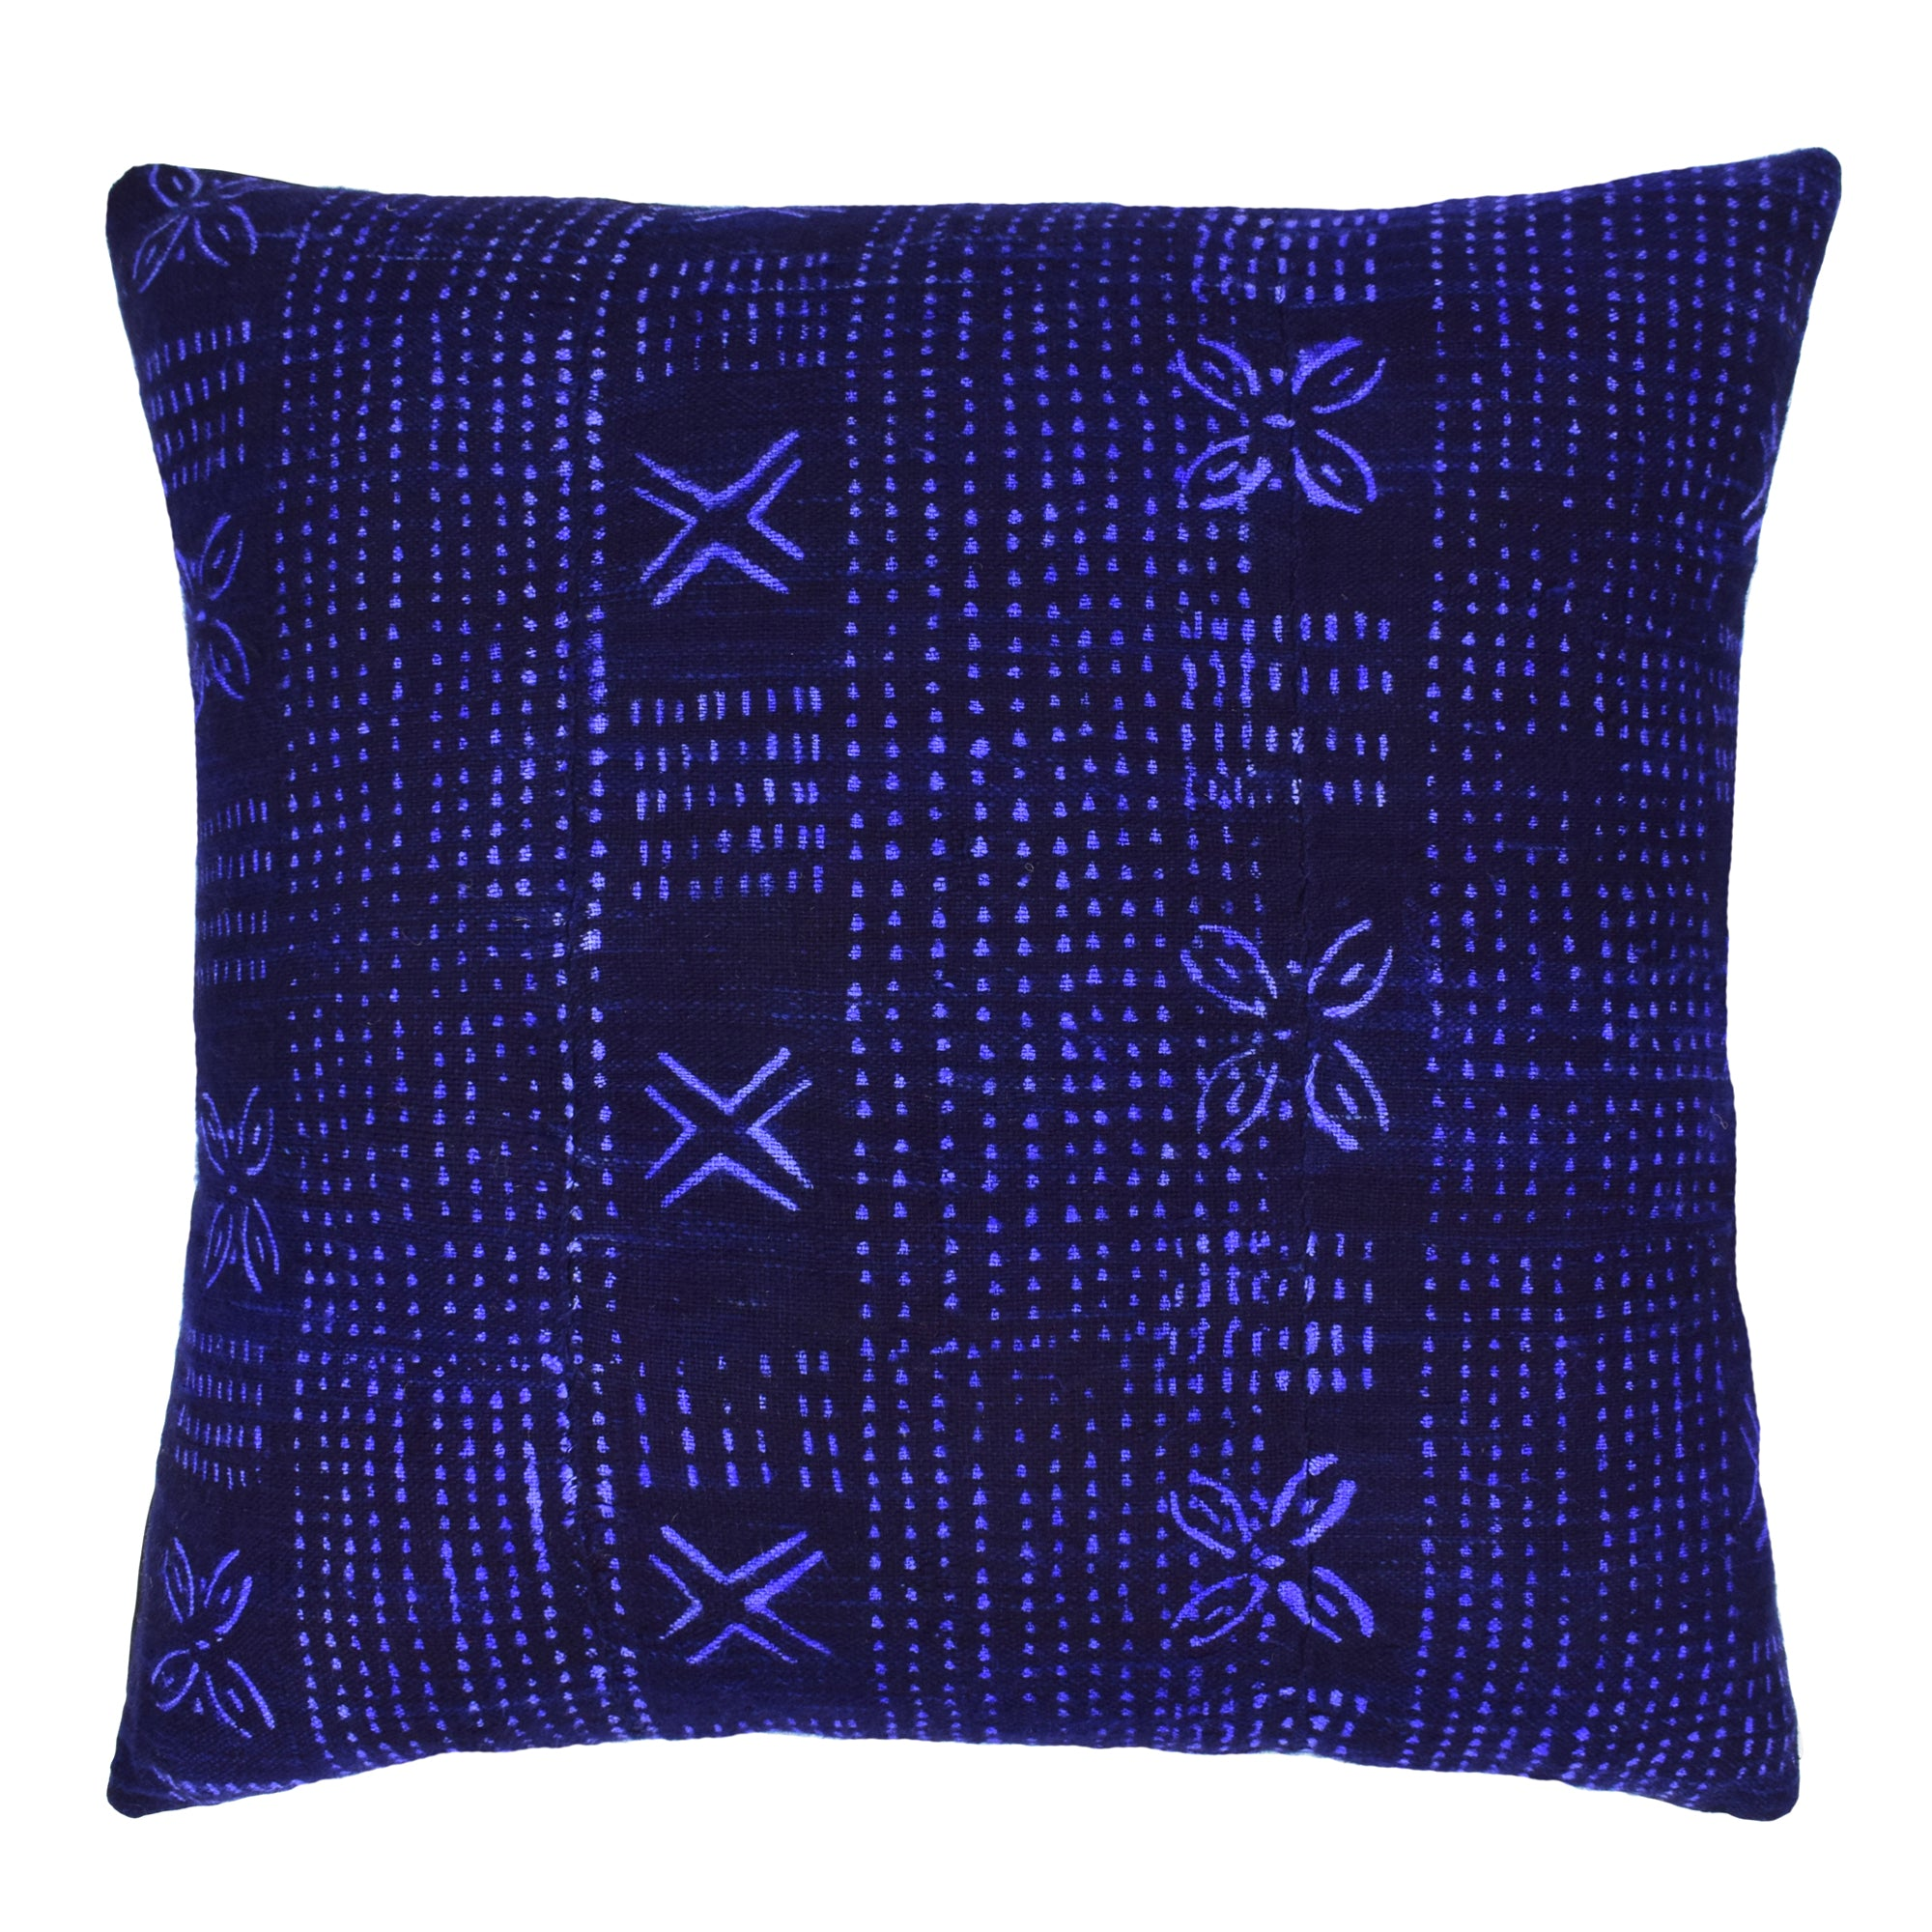 Indigo Blue Navy Mali Mudcloth Cushion Ikat Crosses Flowers